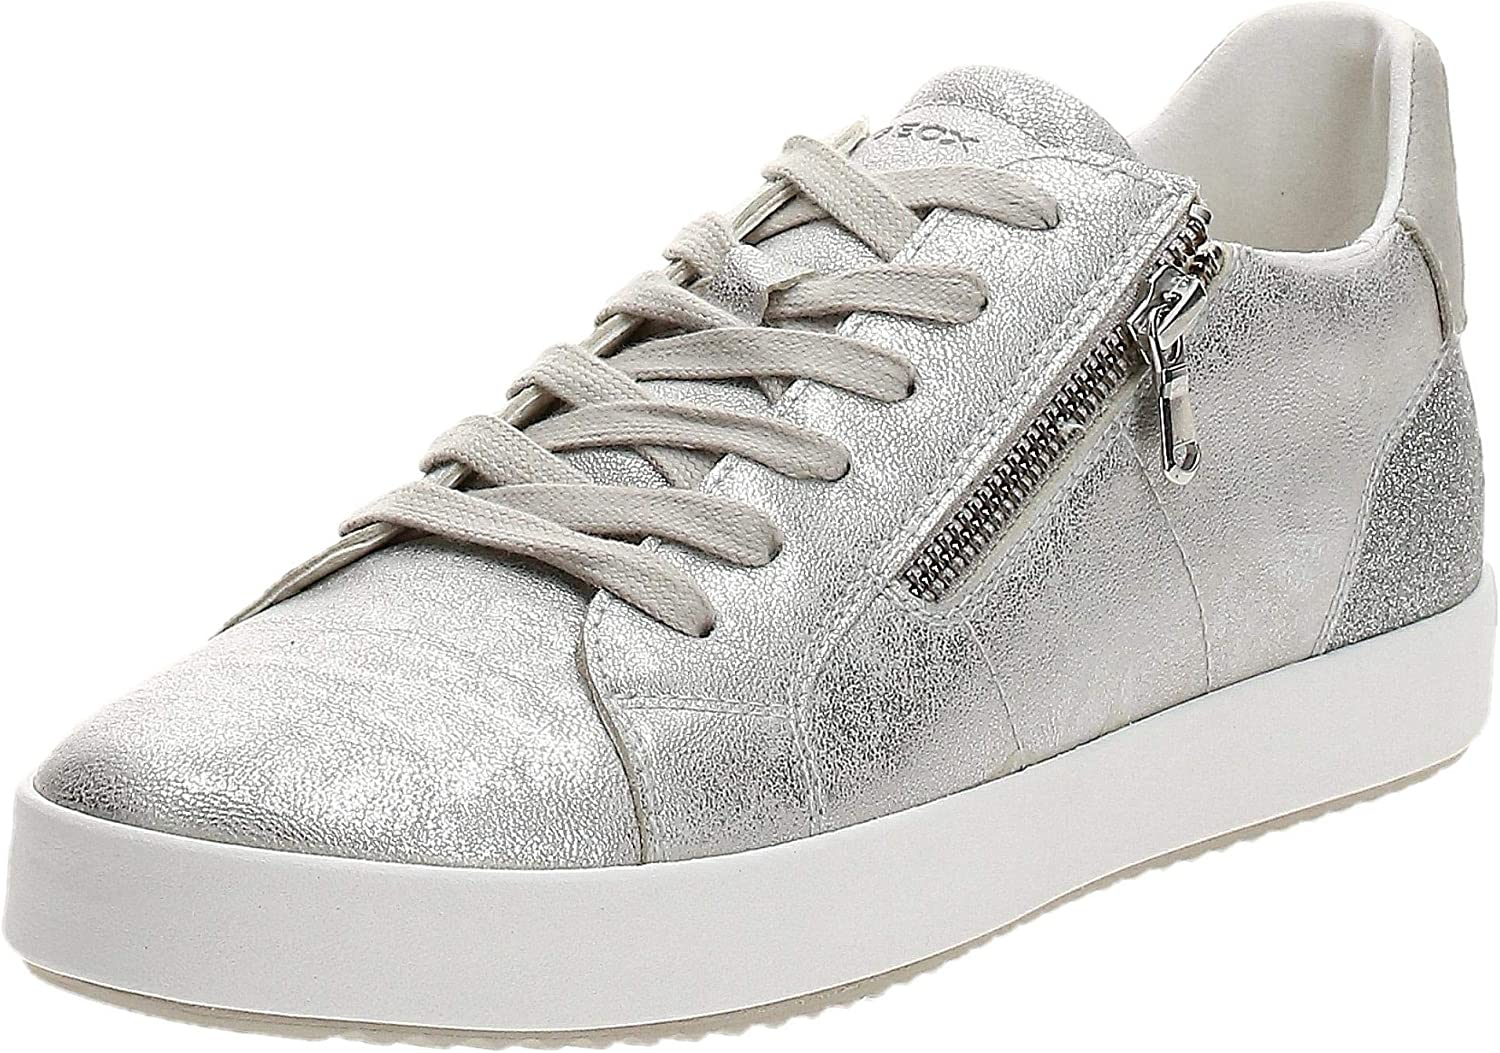 Contribuyente Guardia no  Amazon.com | Geox D Blomiee Trainers Women Silver Low Top Trainers Shoes |  Shoes